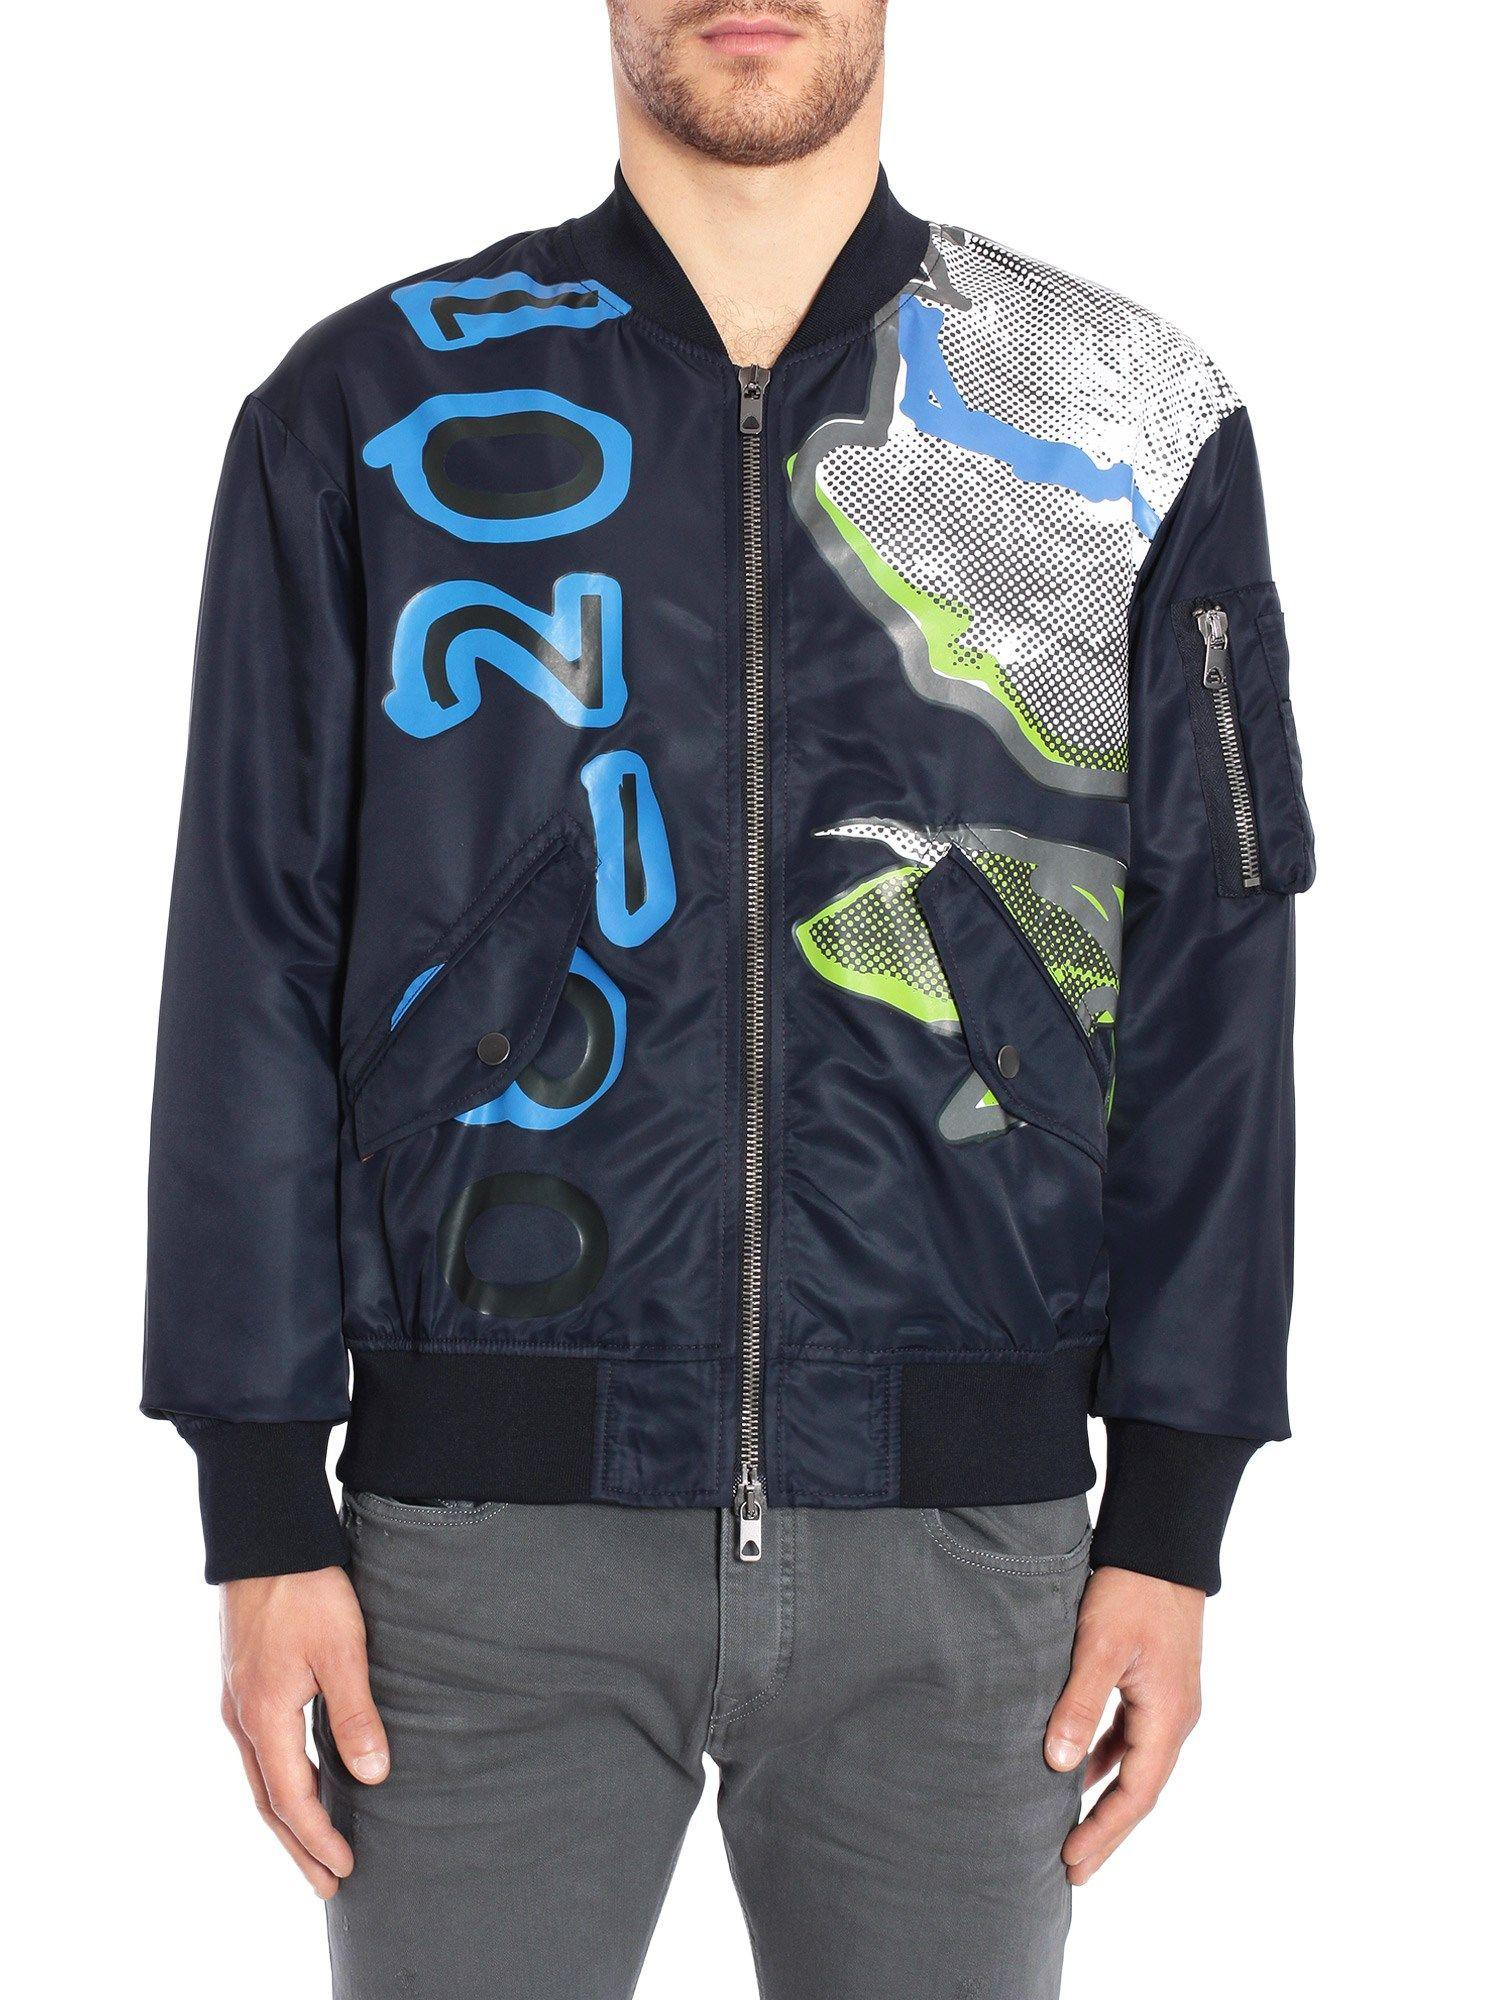 Diesel Black Gold Jibomb-Print Jacket In Blu